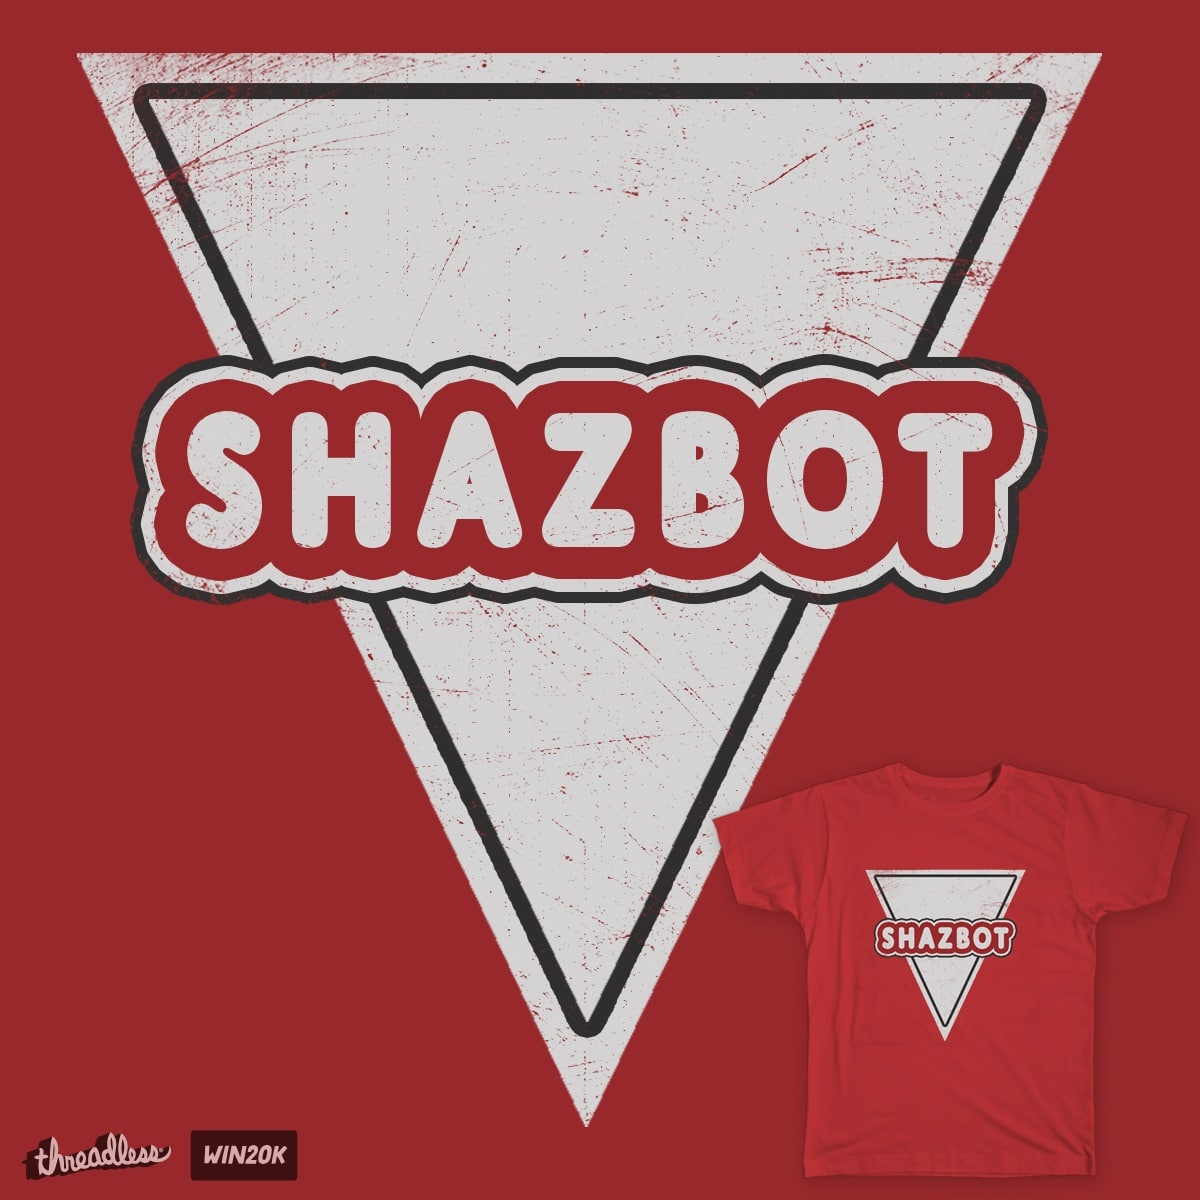 SHAZBOT by TRYBYK on Threadless